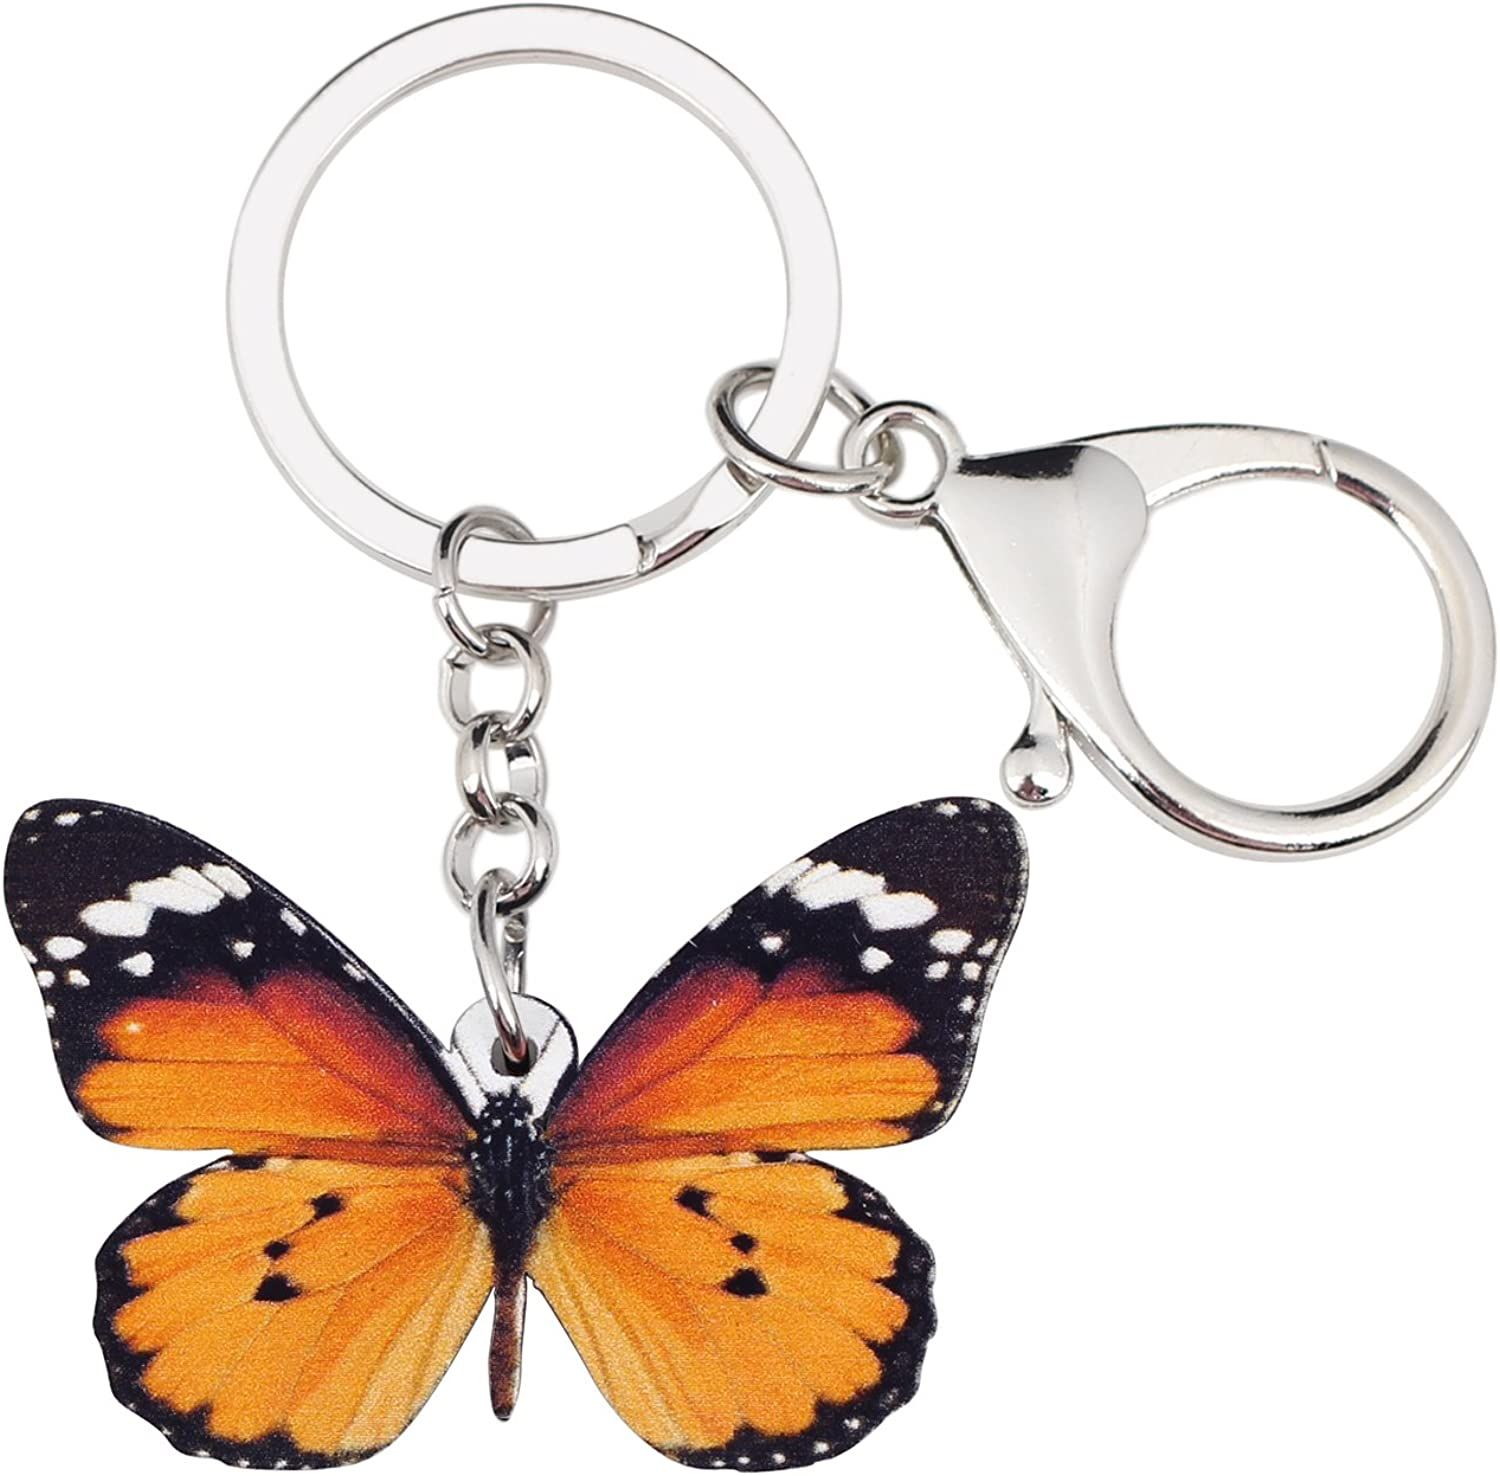 BONSNY Patterned Acrylic Danaus Chrysippus Butterfly Keychains For Women Kids Car Key Bag Rings Pendant Charms Gifts